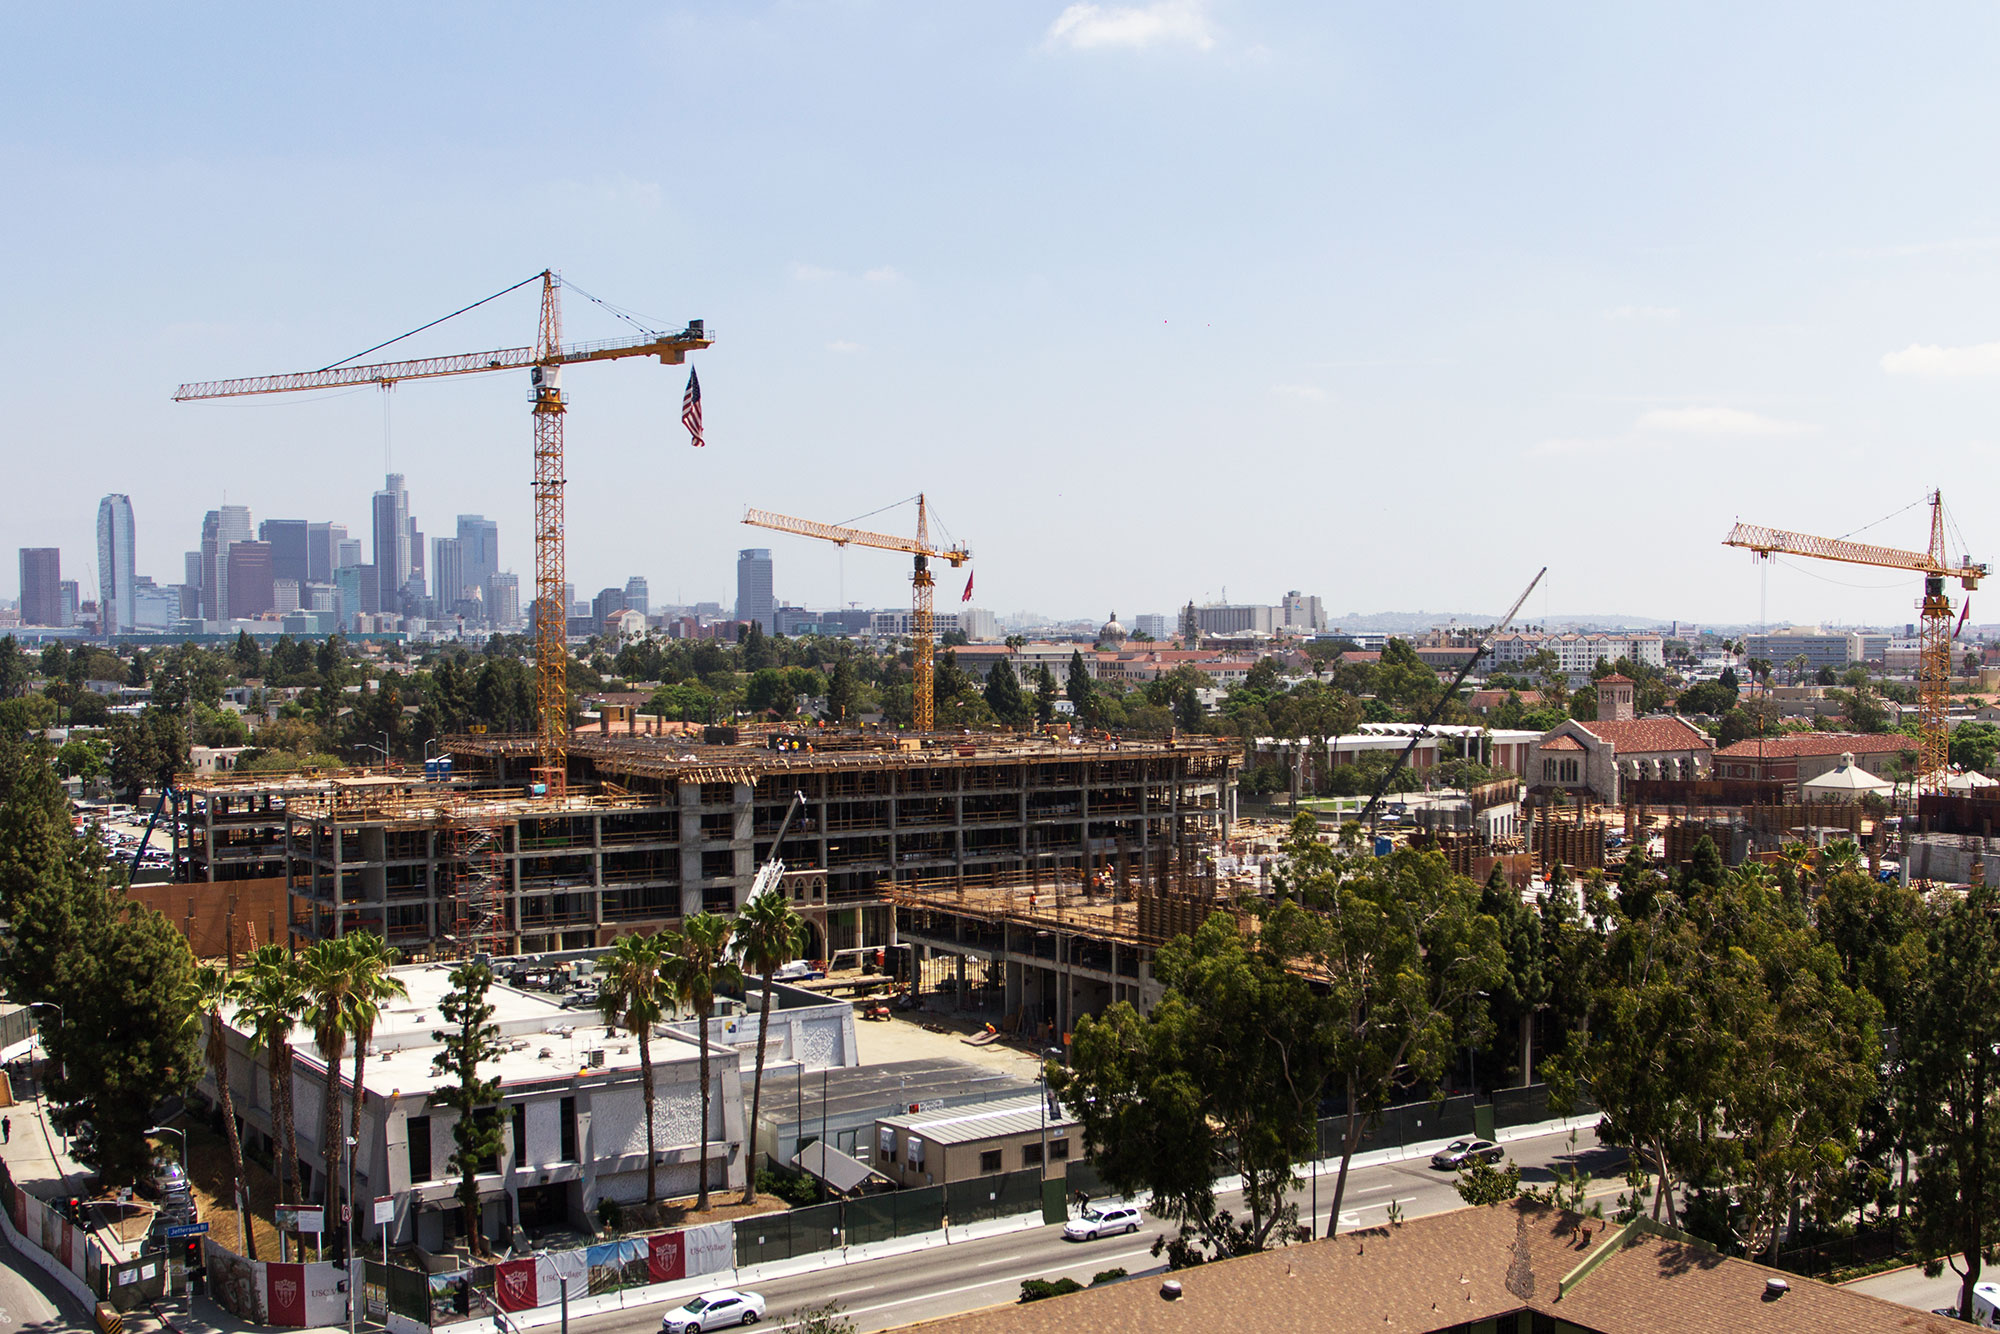 It takes a village · The USC Village, slated to open in fall 2017, has made much progress since the spring semester ended. The new Village is just one of the many building projects USC is currently working on. - Joseph Chen | Daily Trojan